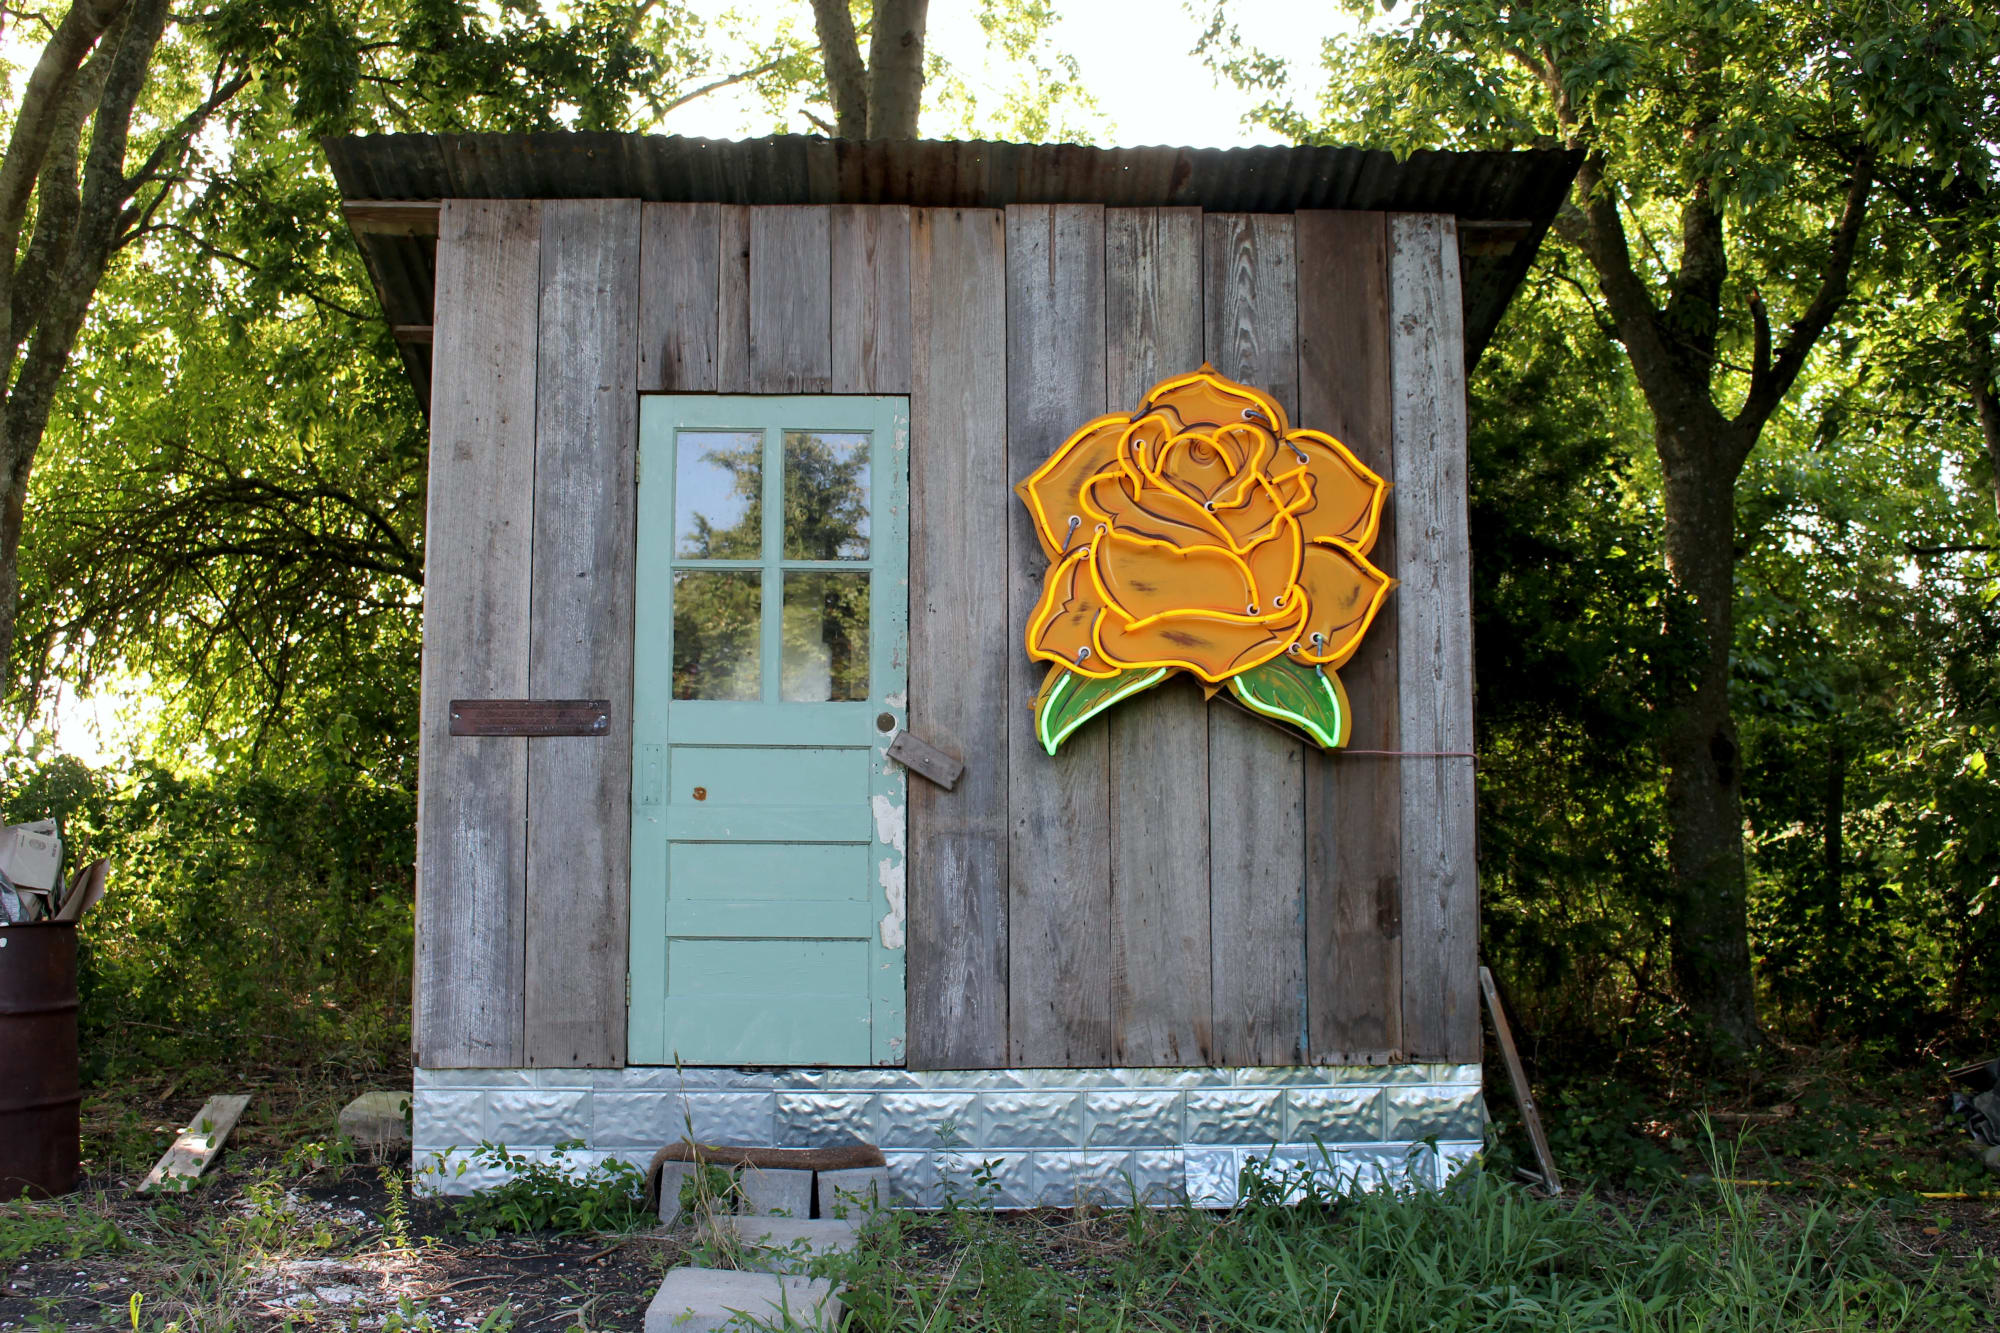 Neon yellow rose artwork on shed